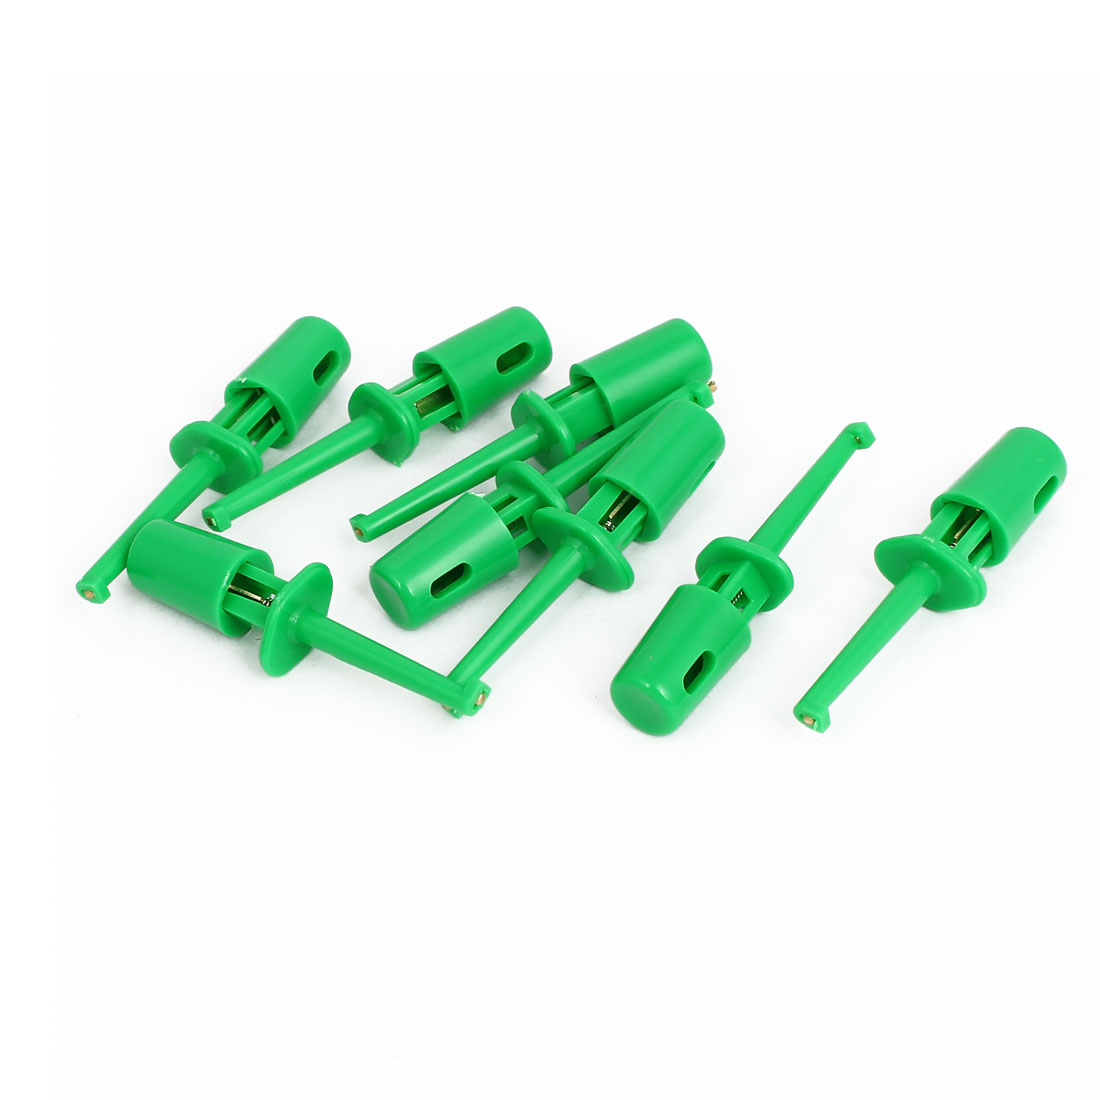 8pcs Plastic Covered Insulation Electrical Lead Wire Testing Hook Clip Green